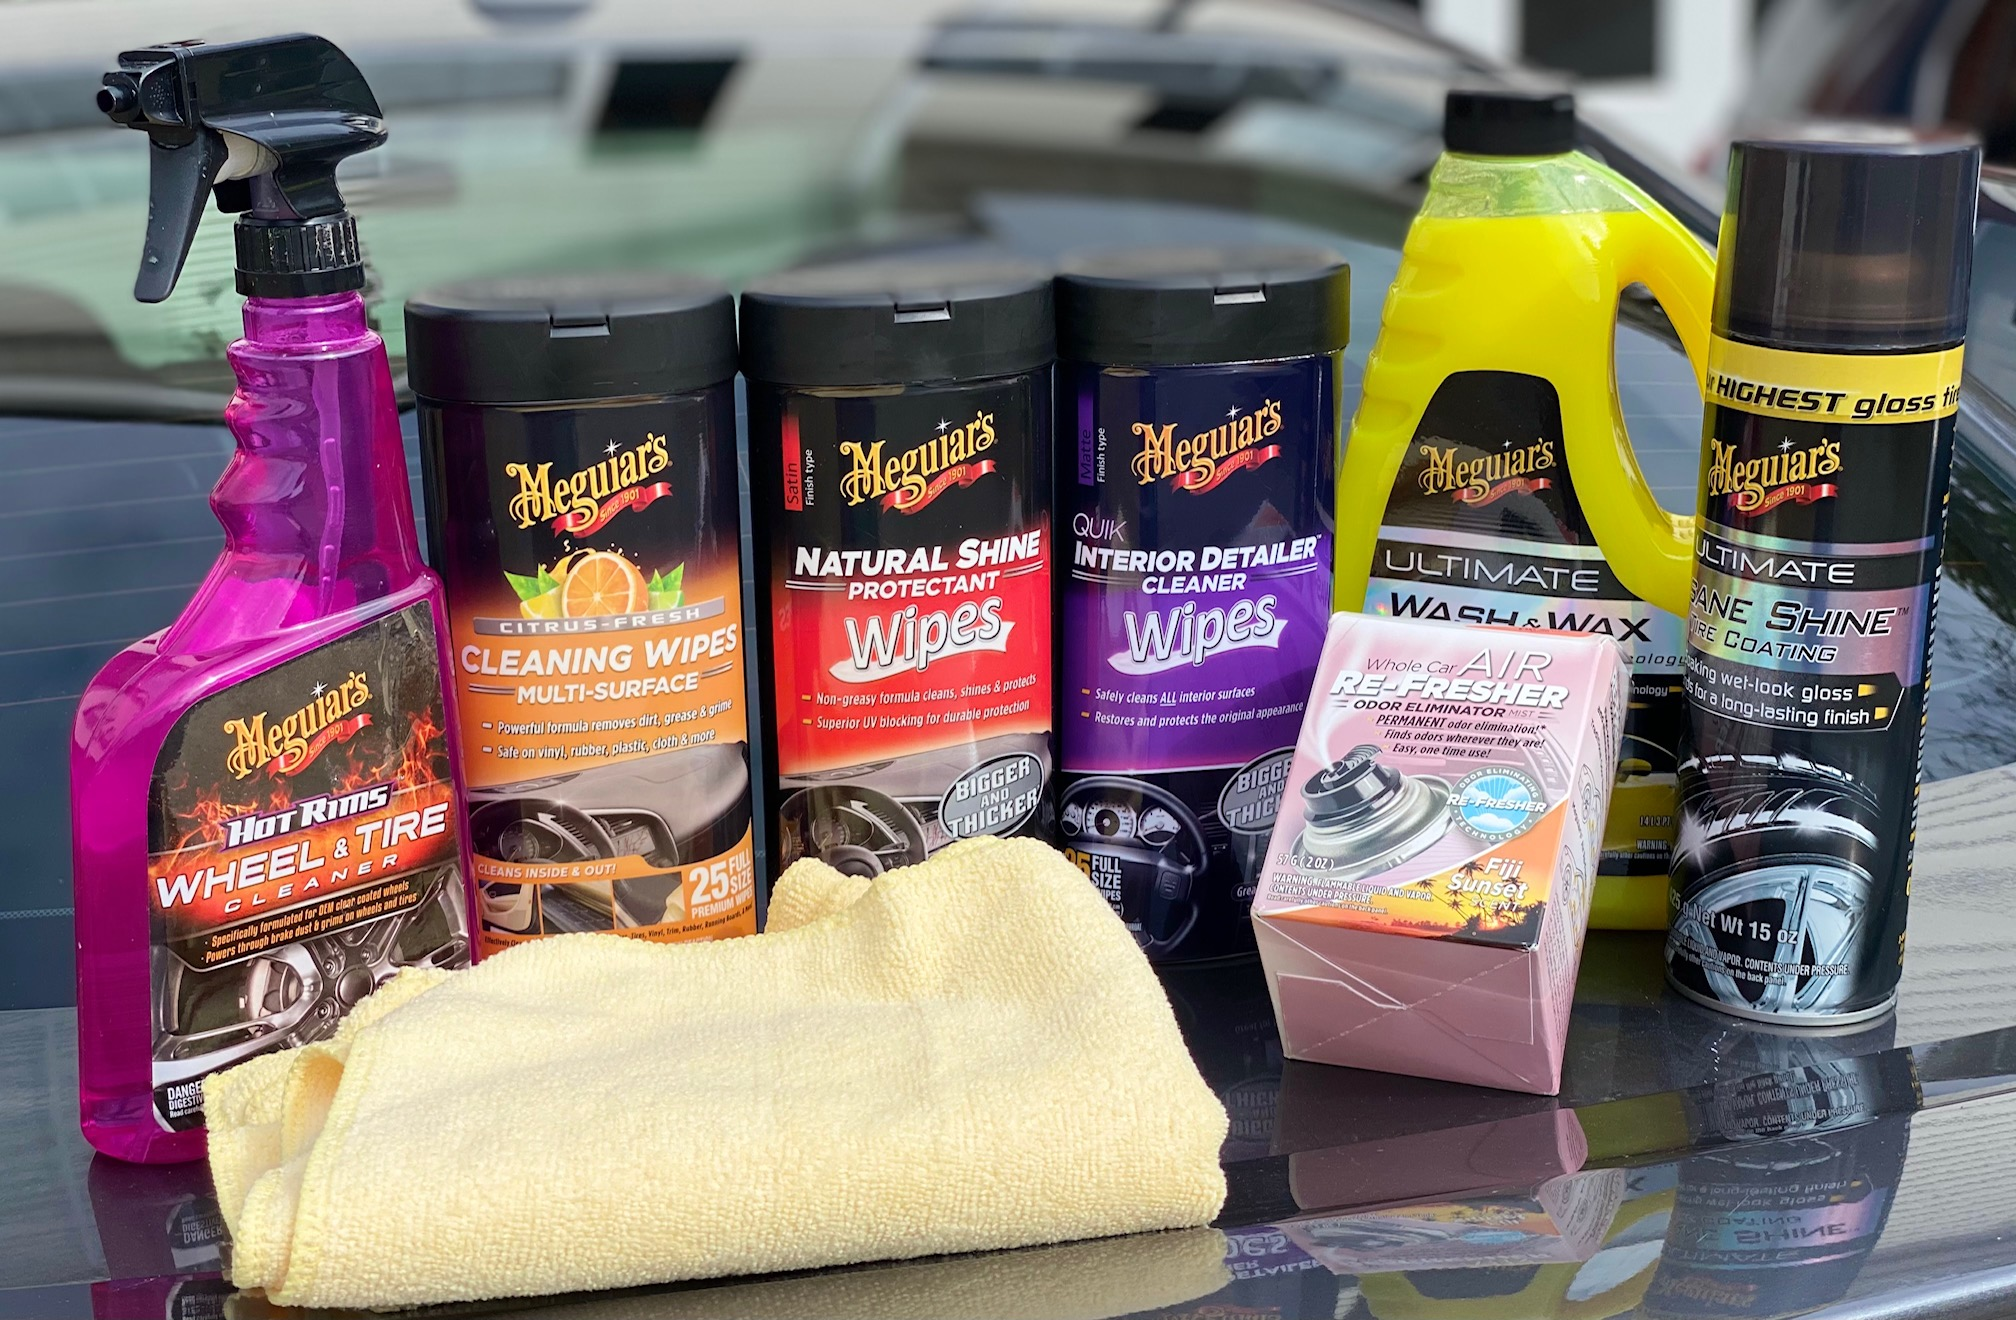 Win Some Great Products from Meguiar's Giveaway